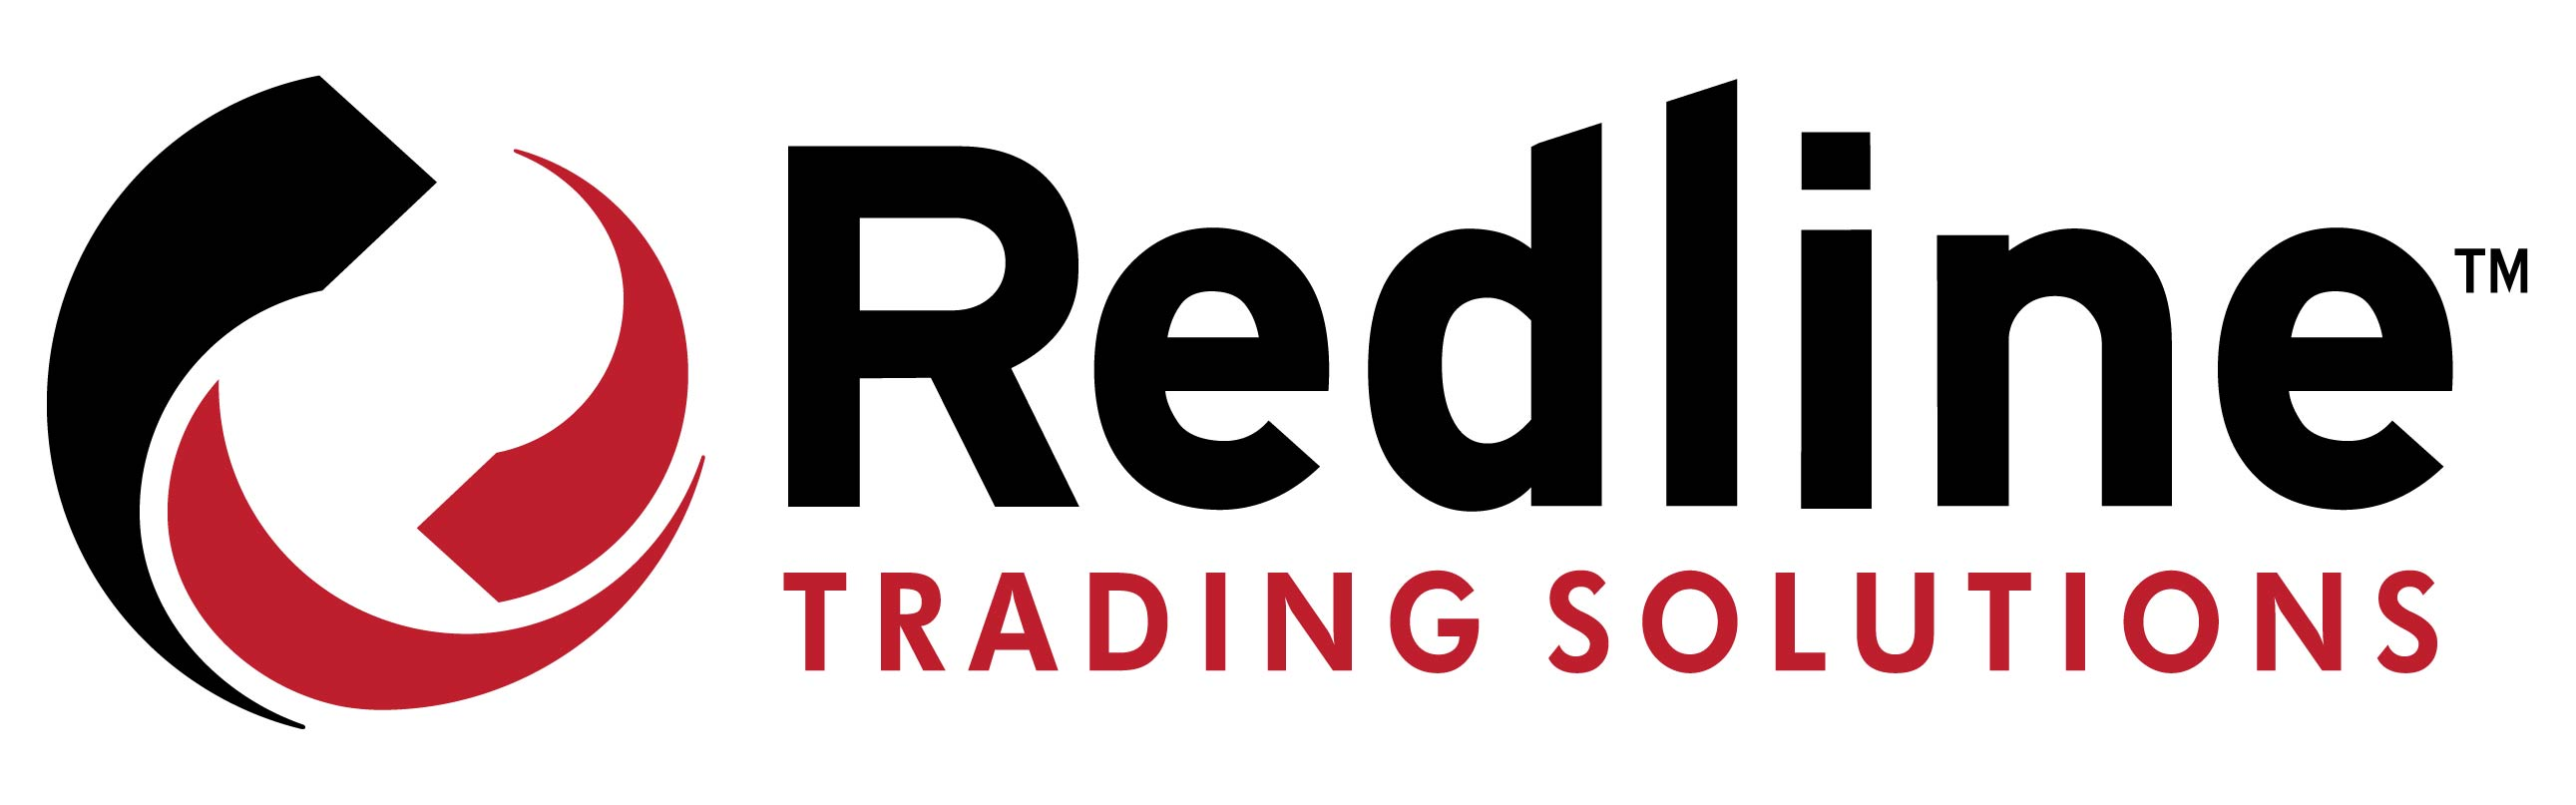 Redline Trading Solutions | Leader in Low Latency Market Data and Order Execution